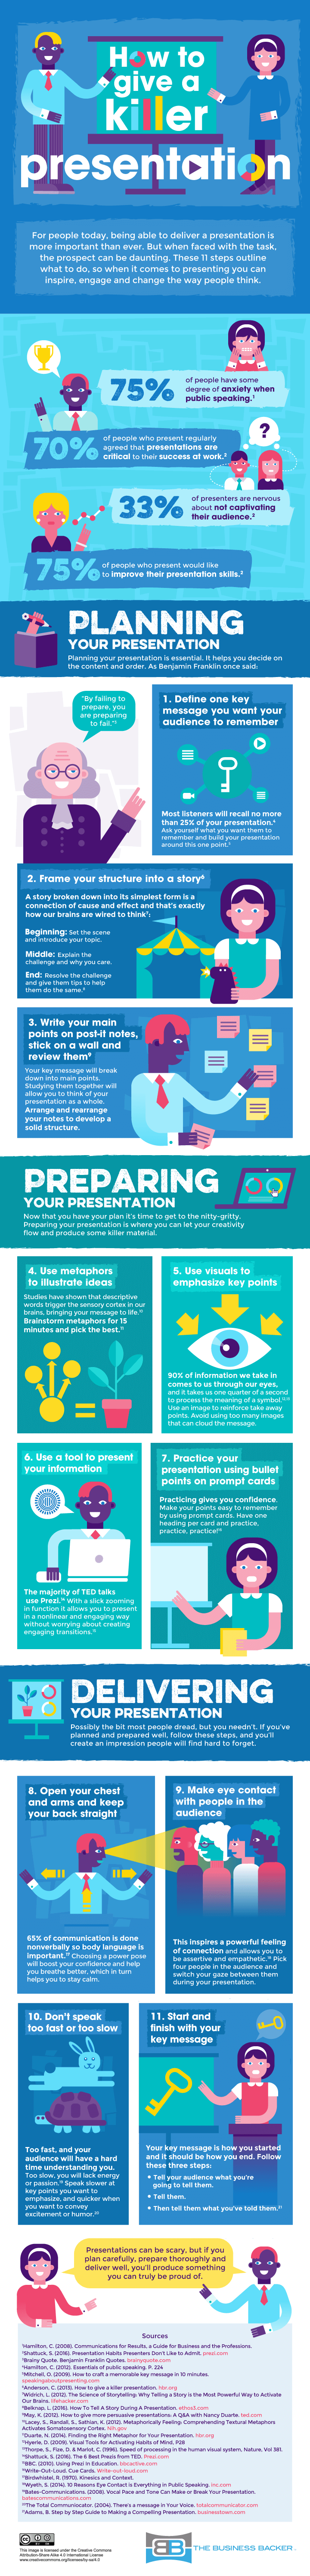 https://assets.entrepreneur.com/images/misc/1484861169_How-to-Give-a-Killer-Presentation.png